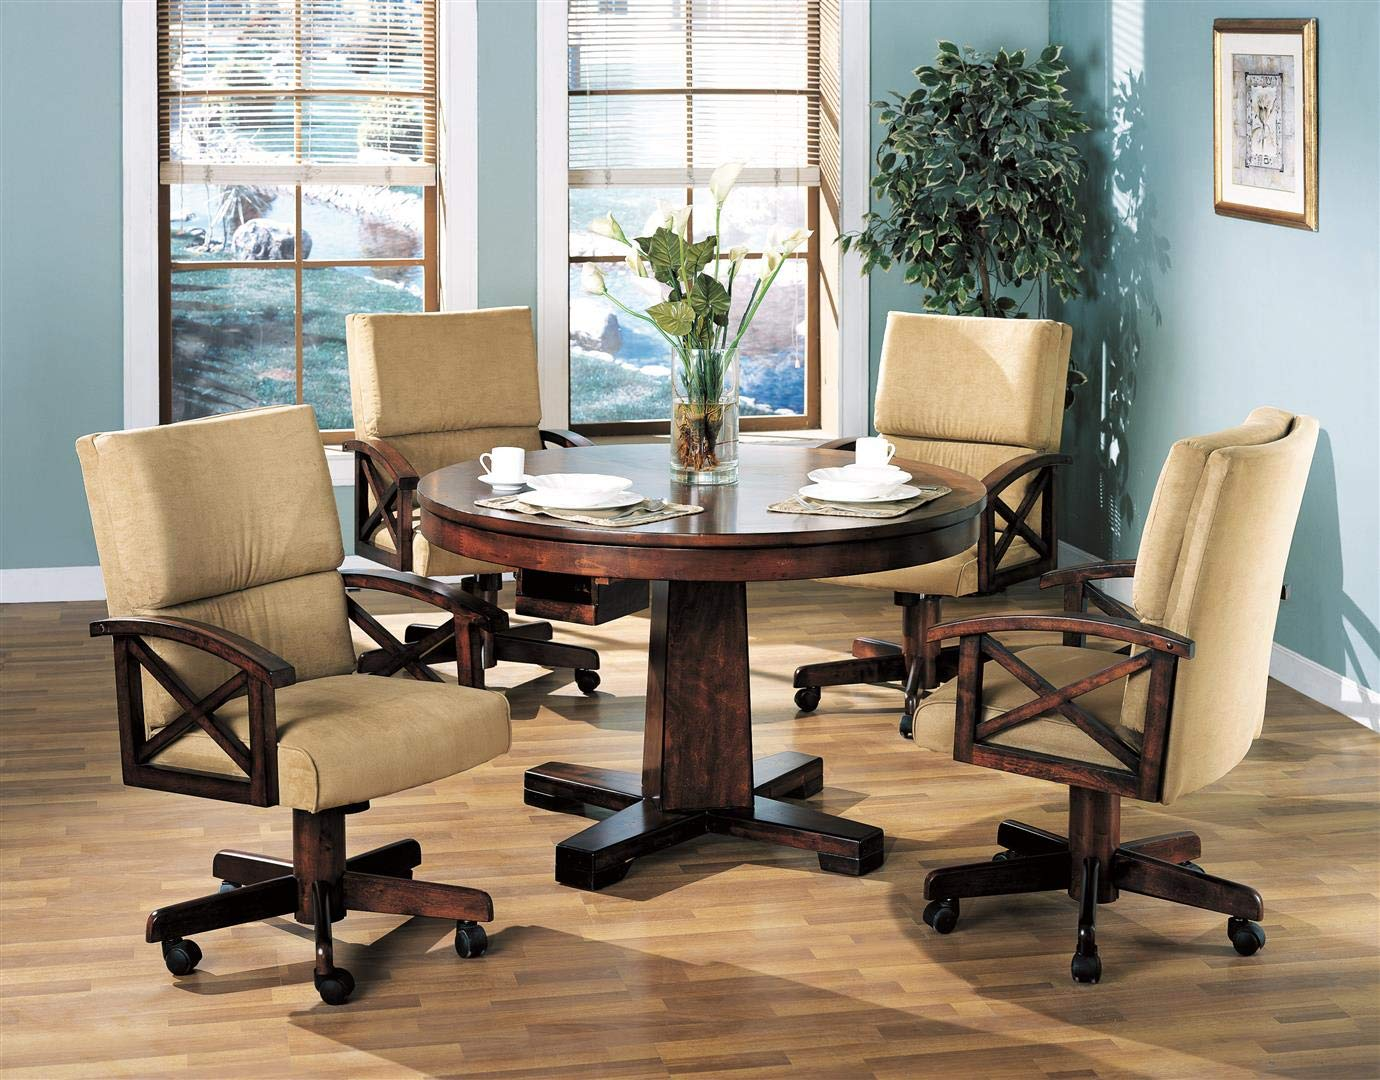 Coaster Home Furnishings Marietta 5-Piece Game Table Dining Set Tobacco and Tan